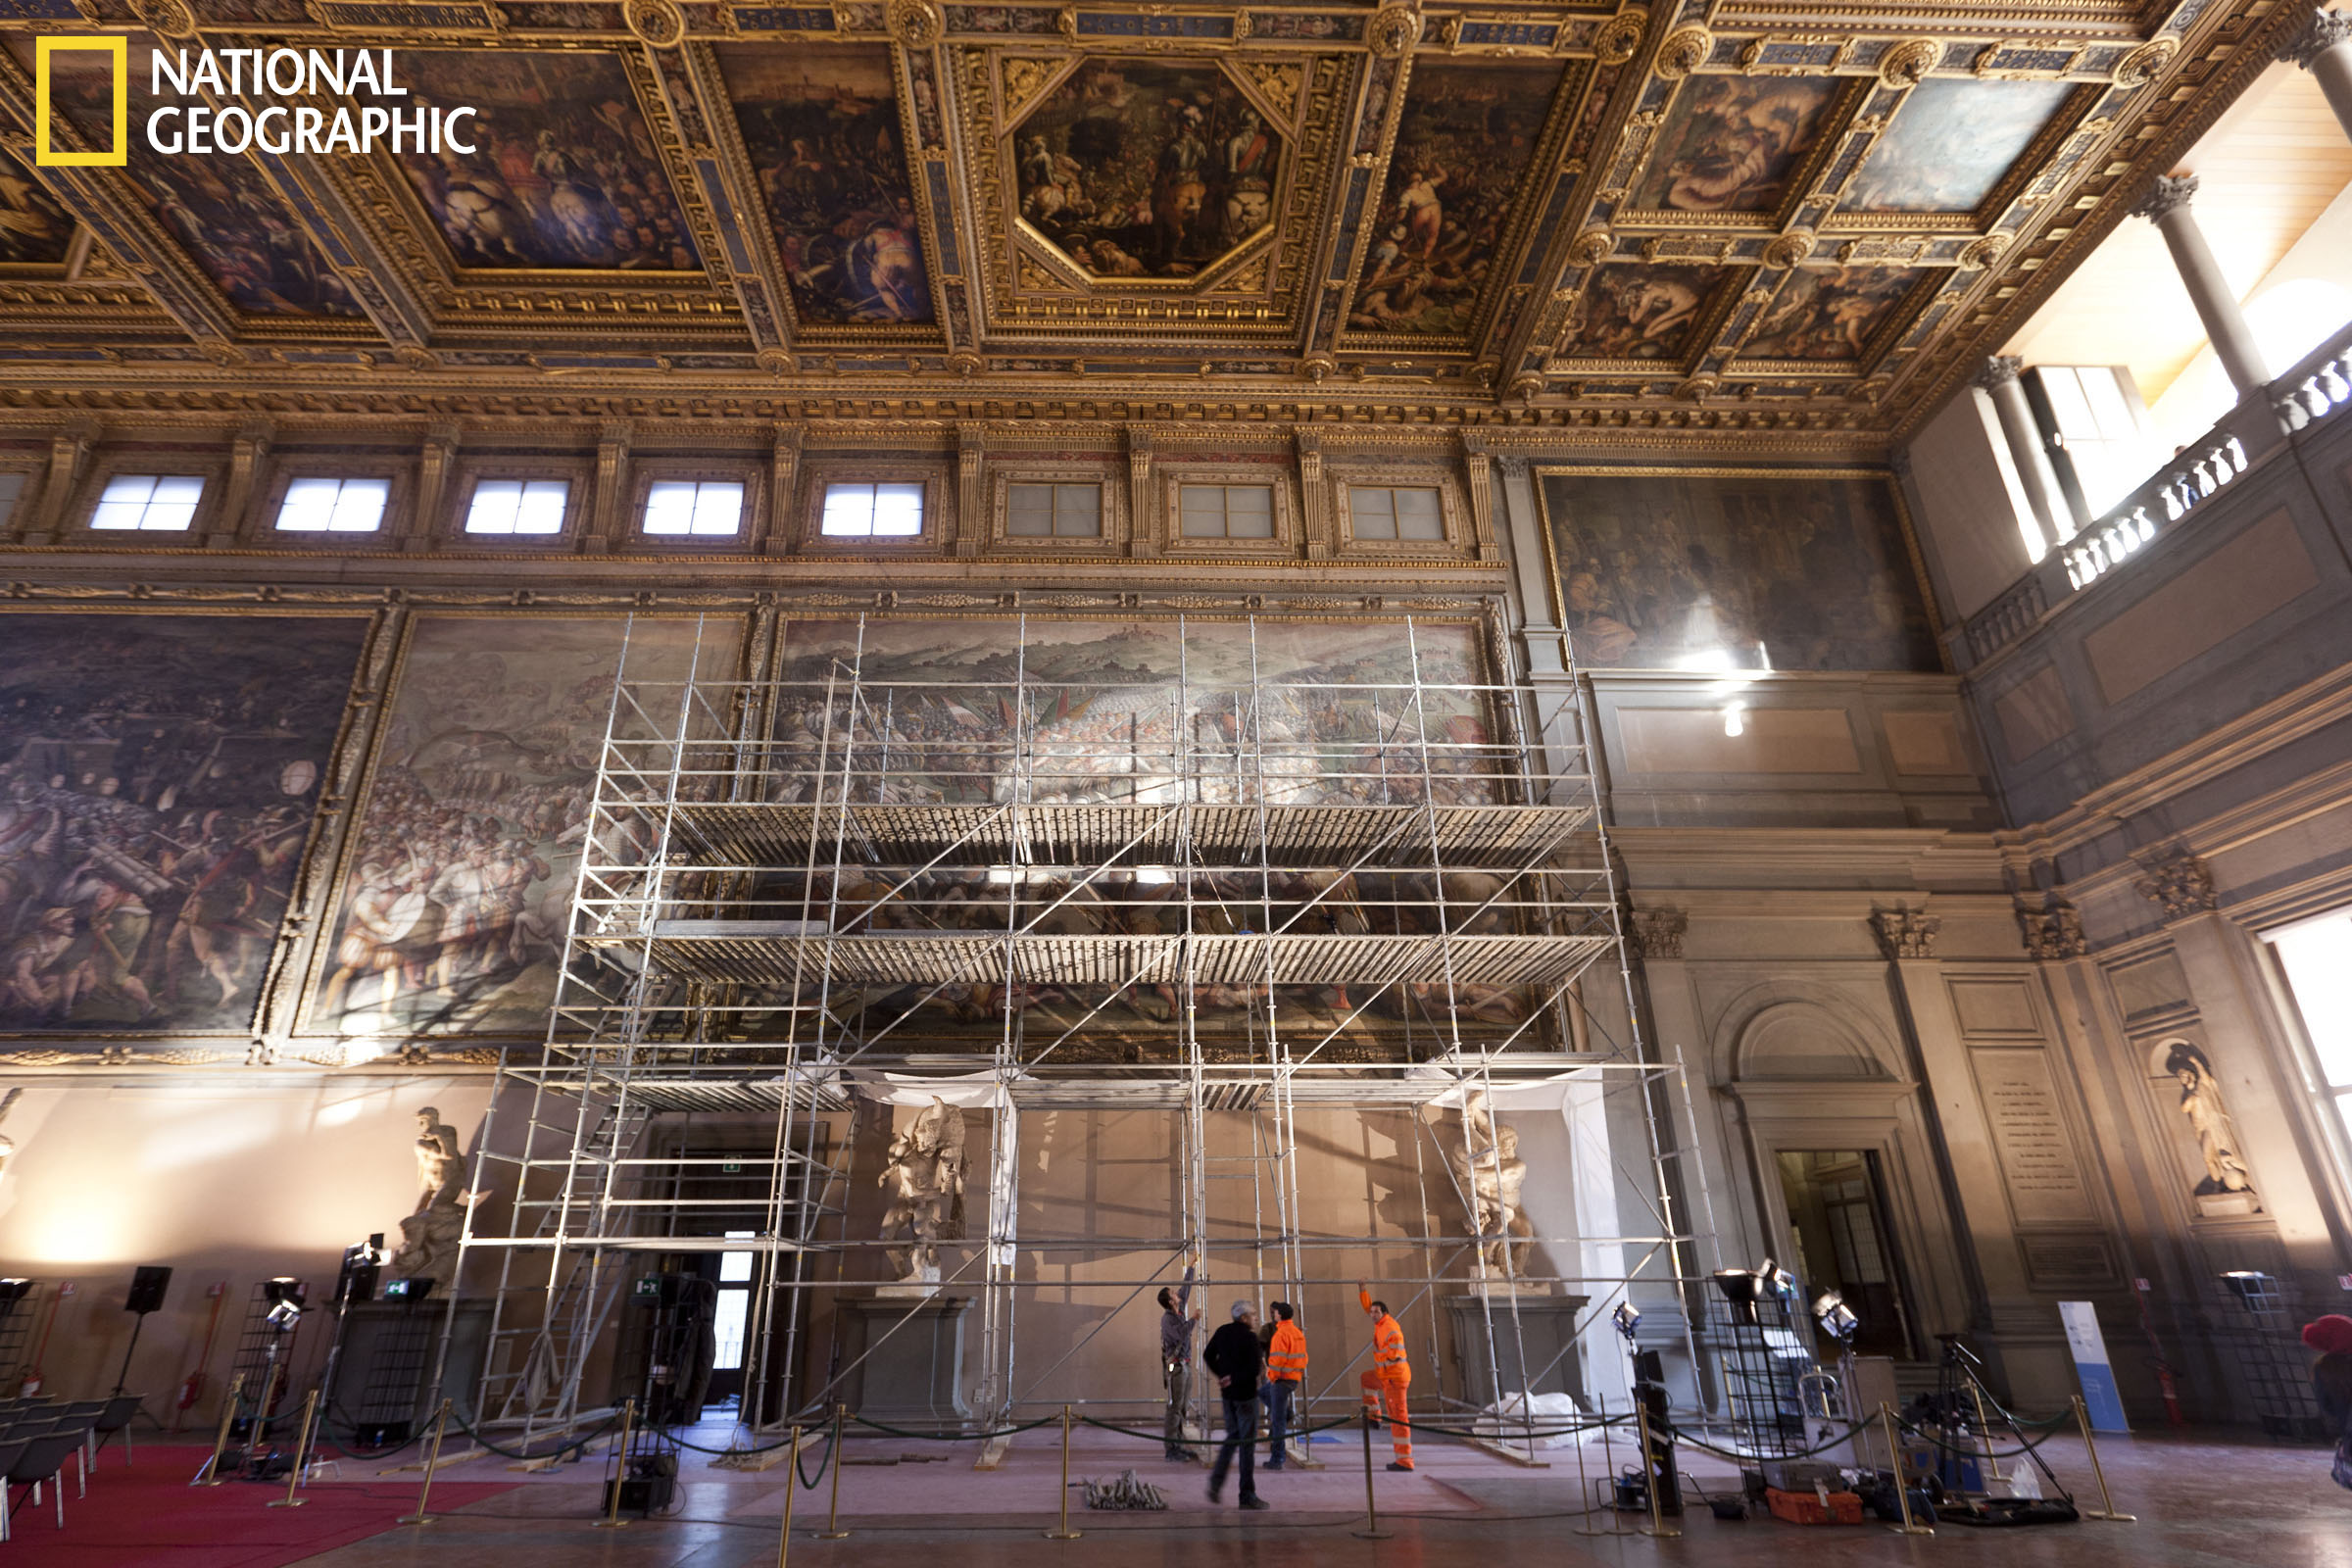 Scaffolding in Hall of 500